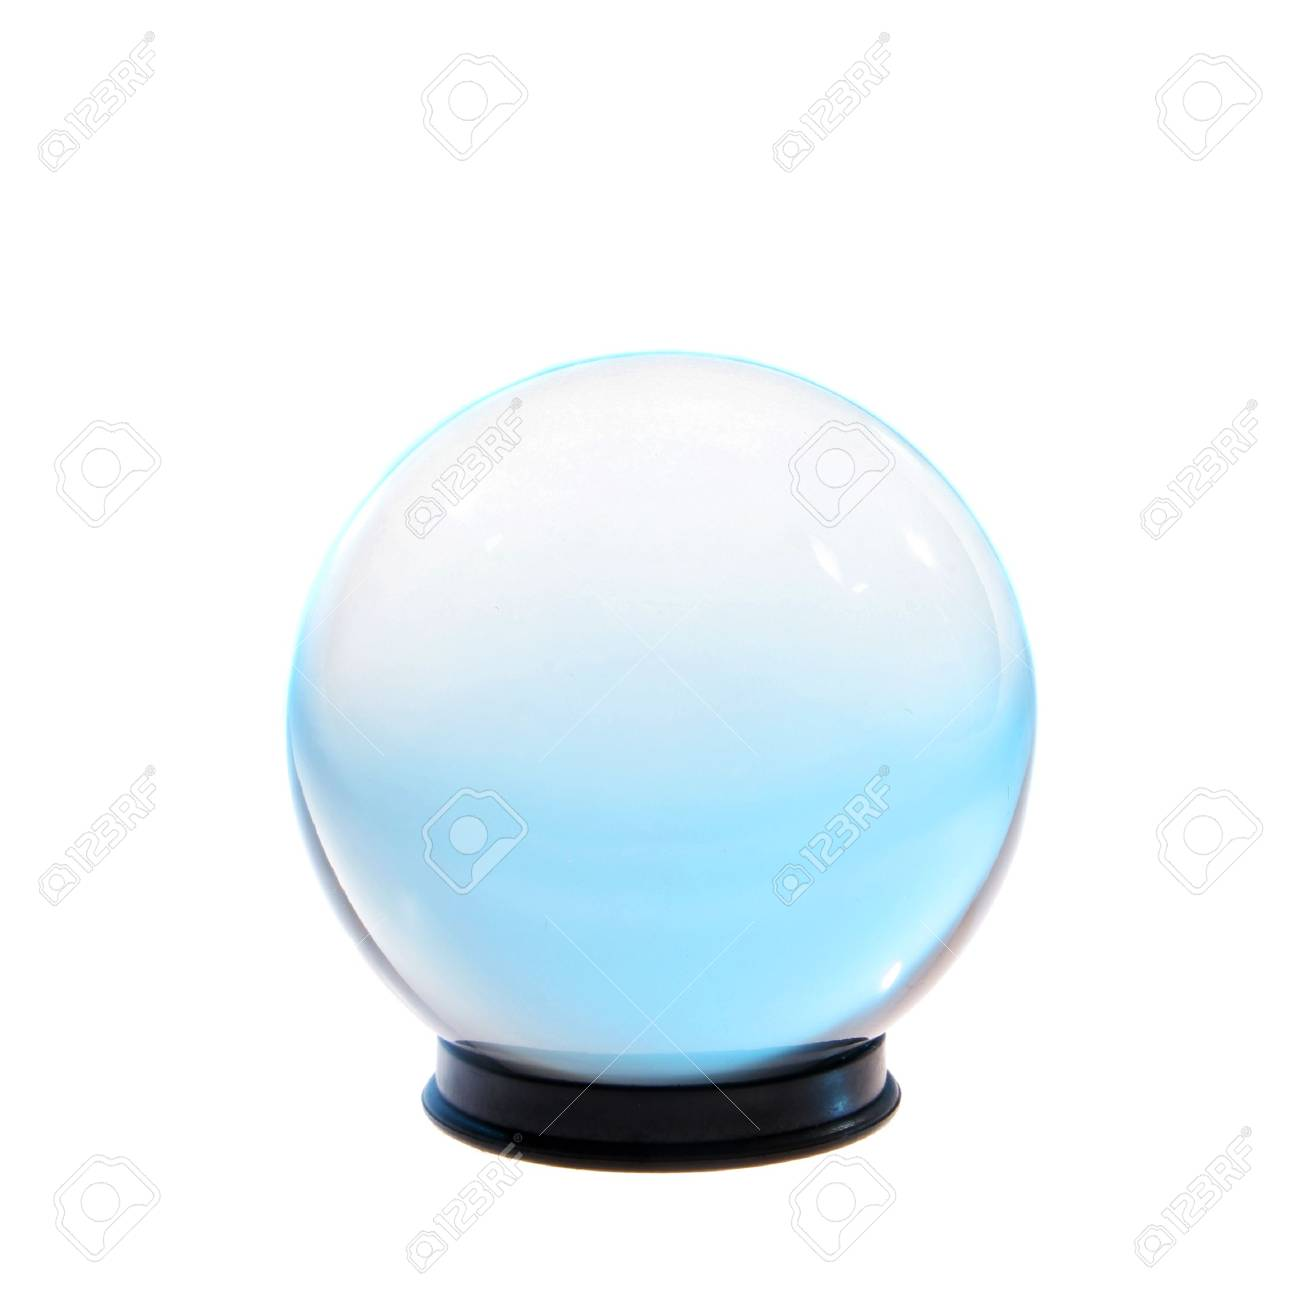 Crystal ball with turquoise light inside isolated on white Stock Photo - 4699873